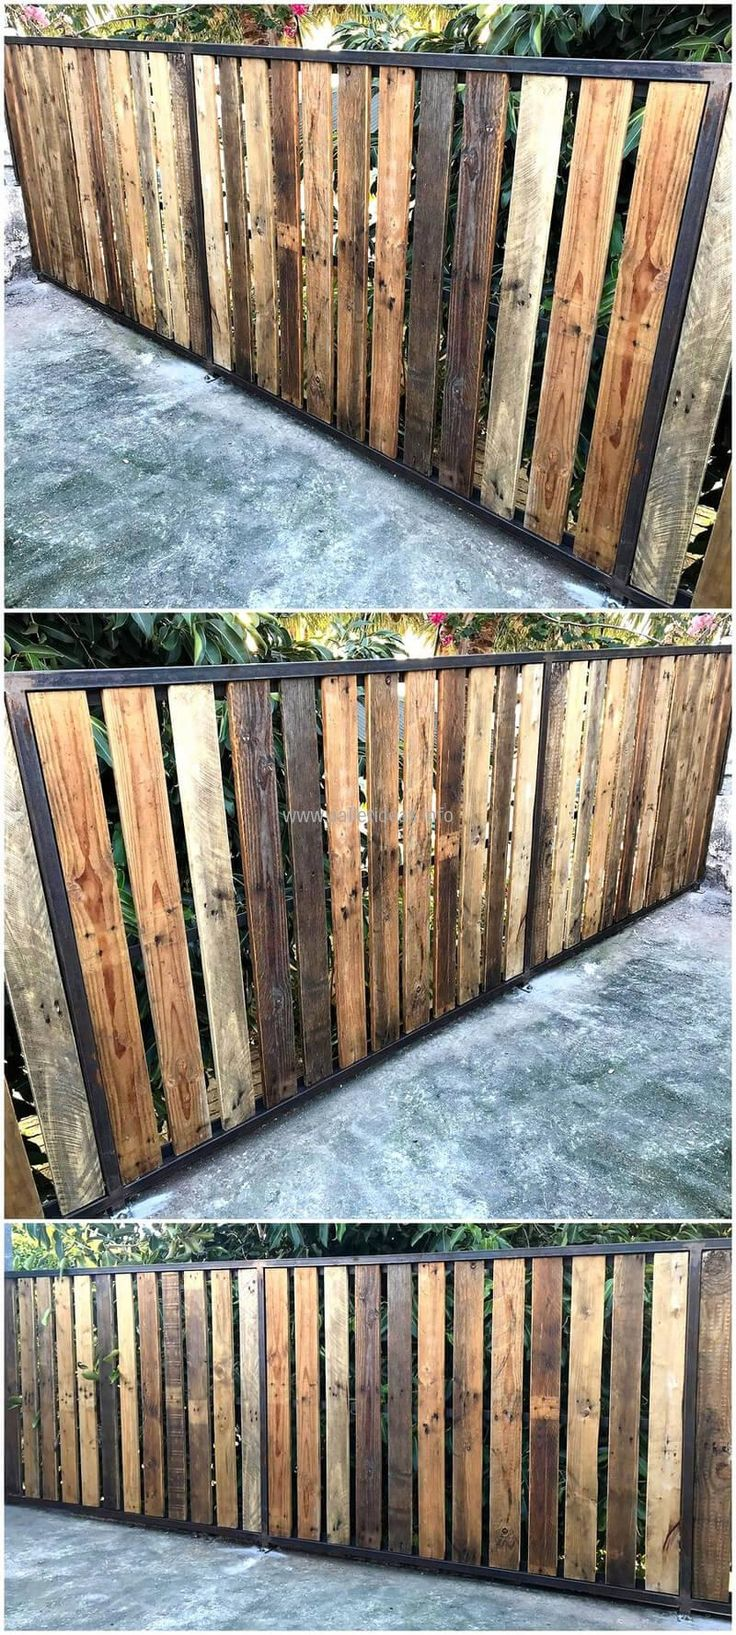 For the protection of the garden, here is an idea for creating a garden fence. The pallets are attached with each other as they were without cutting them into a stylish design because the idea is simple. This idea will not take much time in completion.